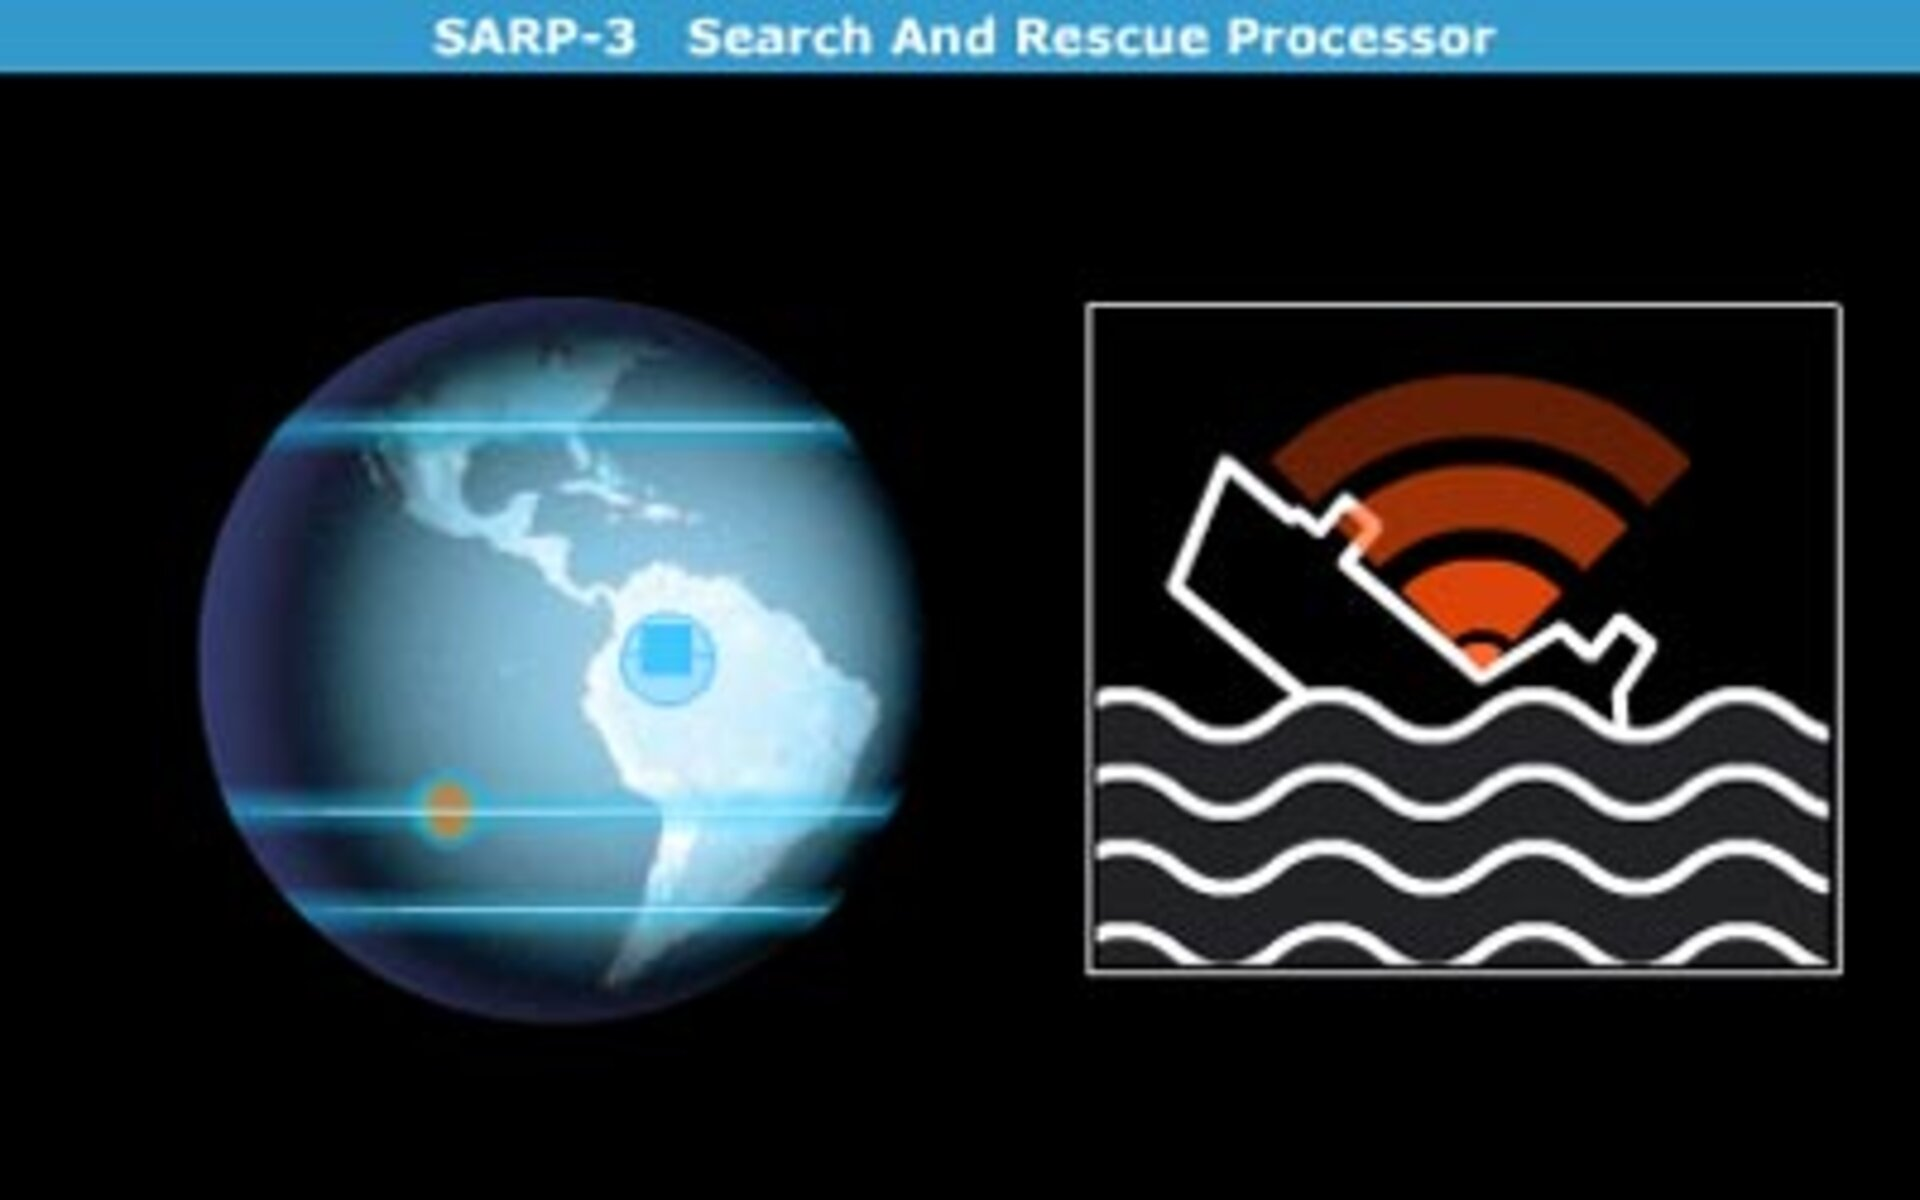 SARP-3 Search And Rescue Processor